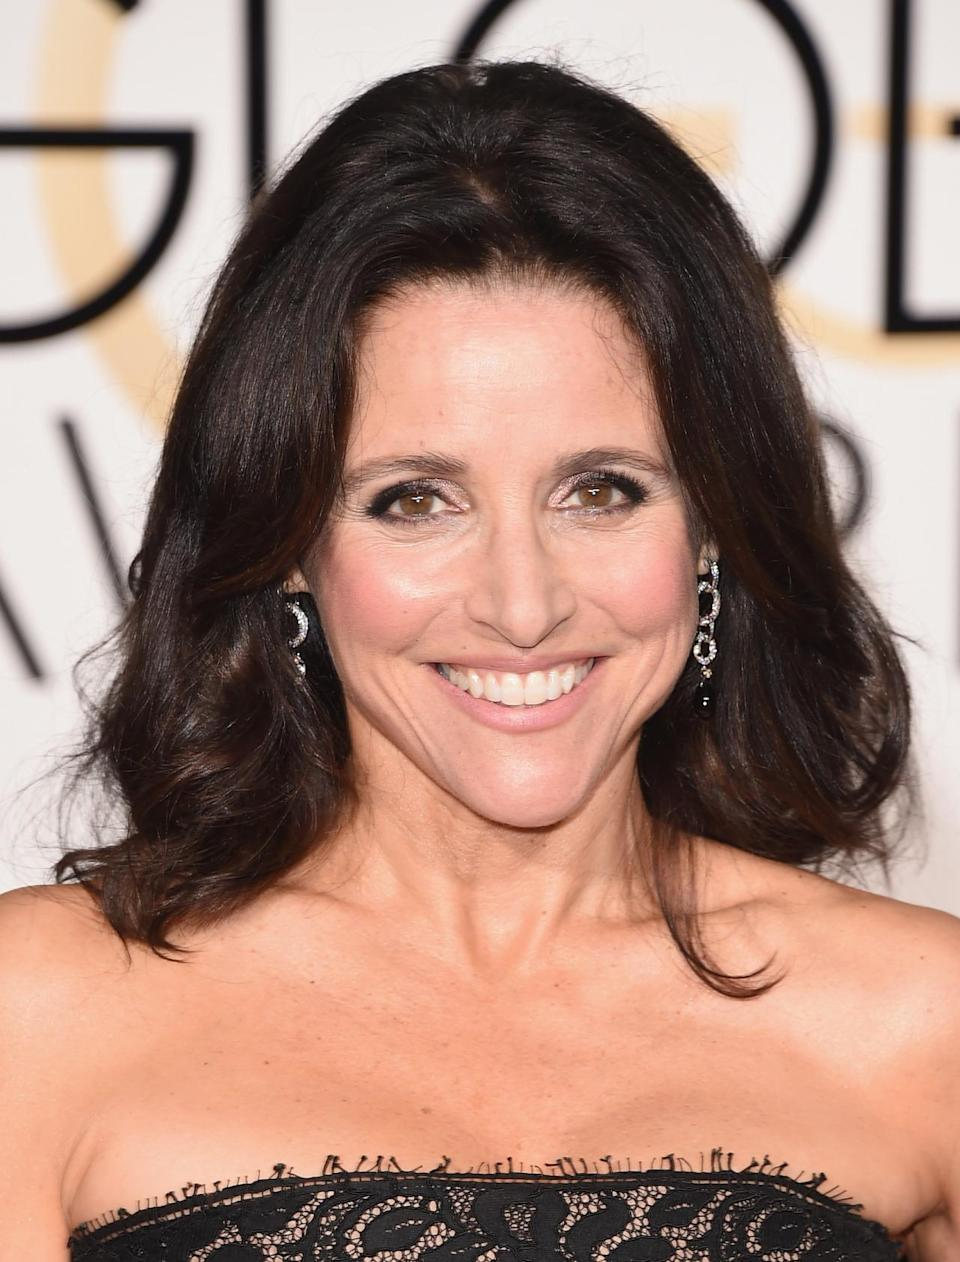 """<p>The <i>Veep </i>star was at the beach one week ago, according to <a href=""""https://www.instagram.com/p/_7YmC-Oxlh/?taken-by=officialjld"""" rel=""""nofollow noopener"""" target=""""_blank"""" data-ylk=""""slk:Instagram"""" class=""""link rapid-noclick-resp"""">Instagram</a>, so she's still rocking the glow. <i>(Photo: Getty Images)</i></p>"""